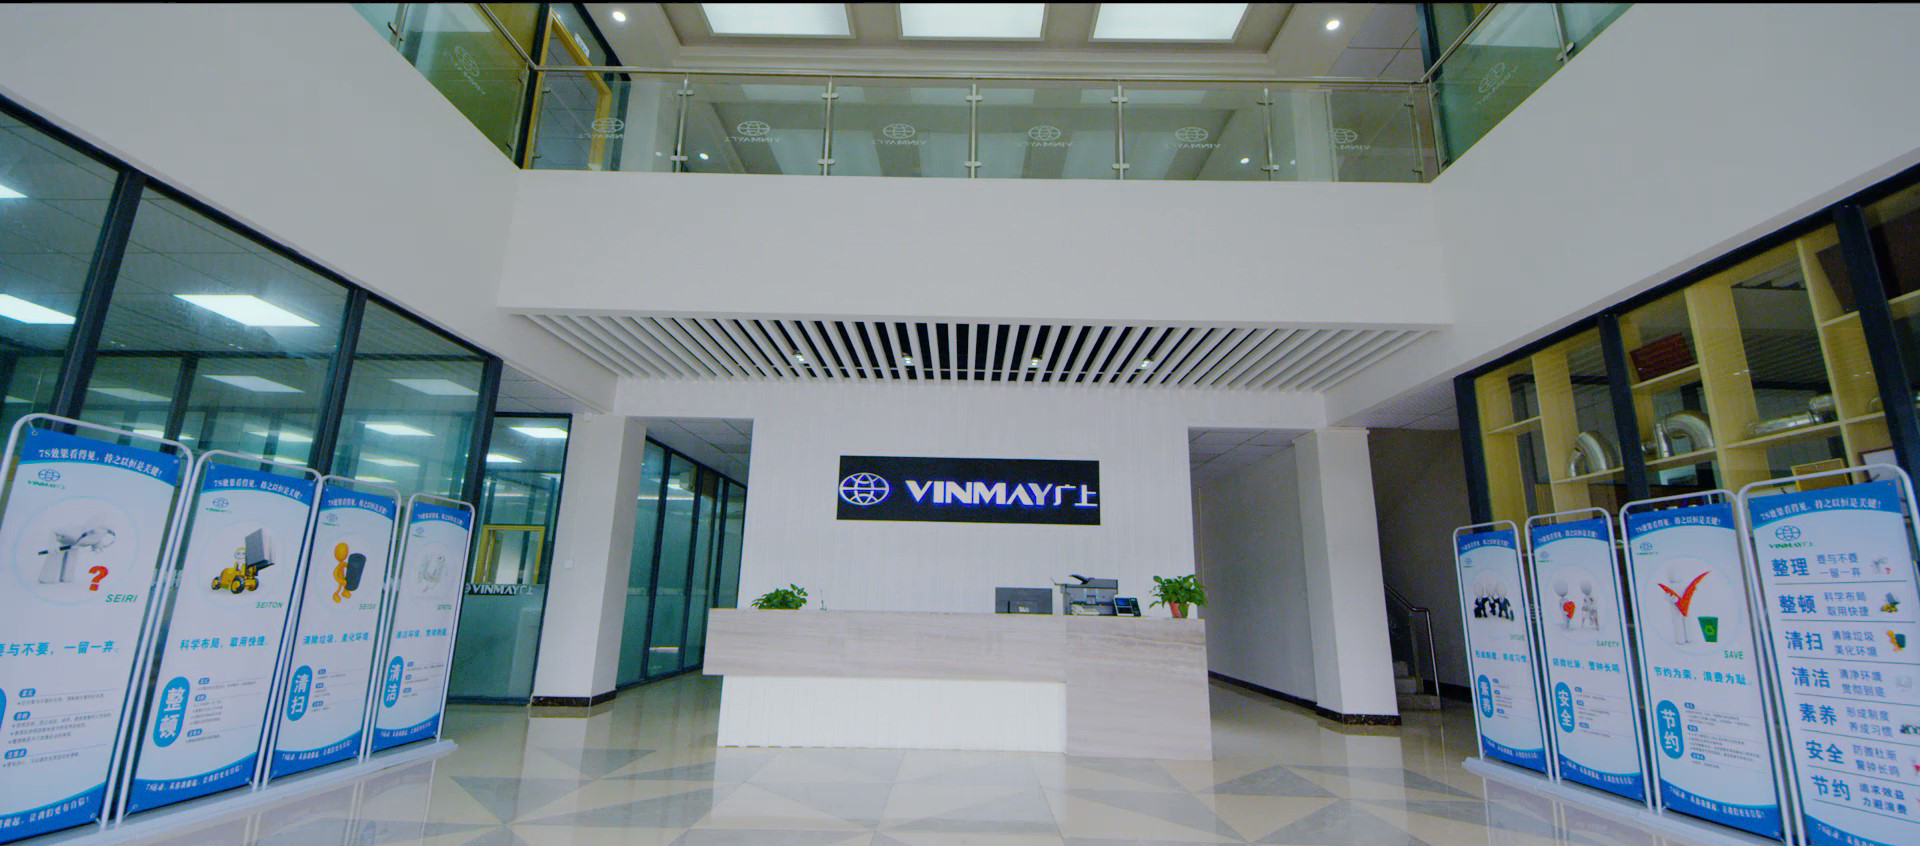 vinmay stainless steel tube